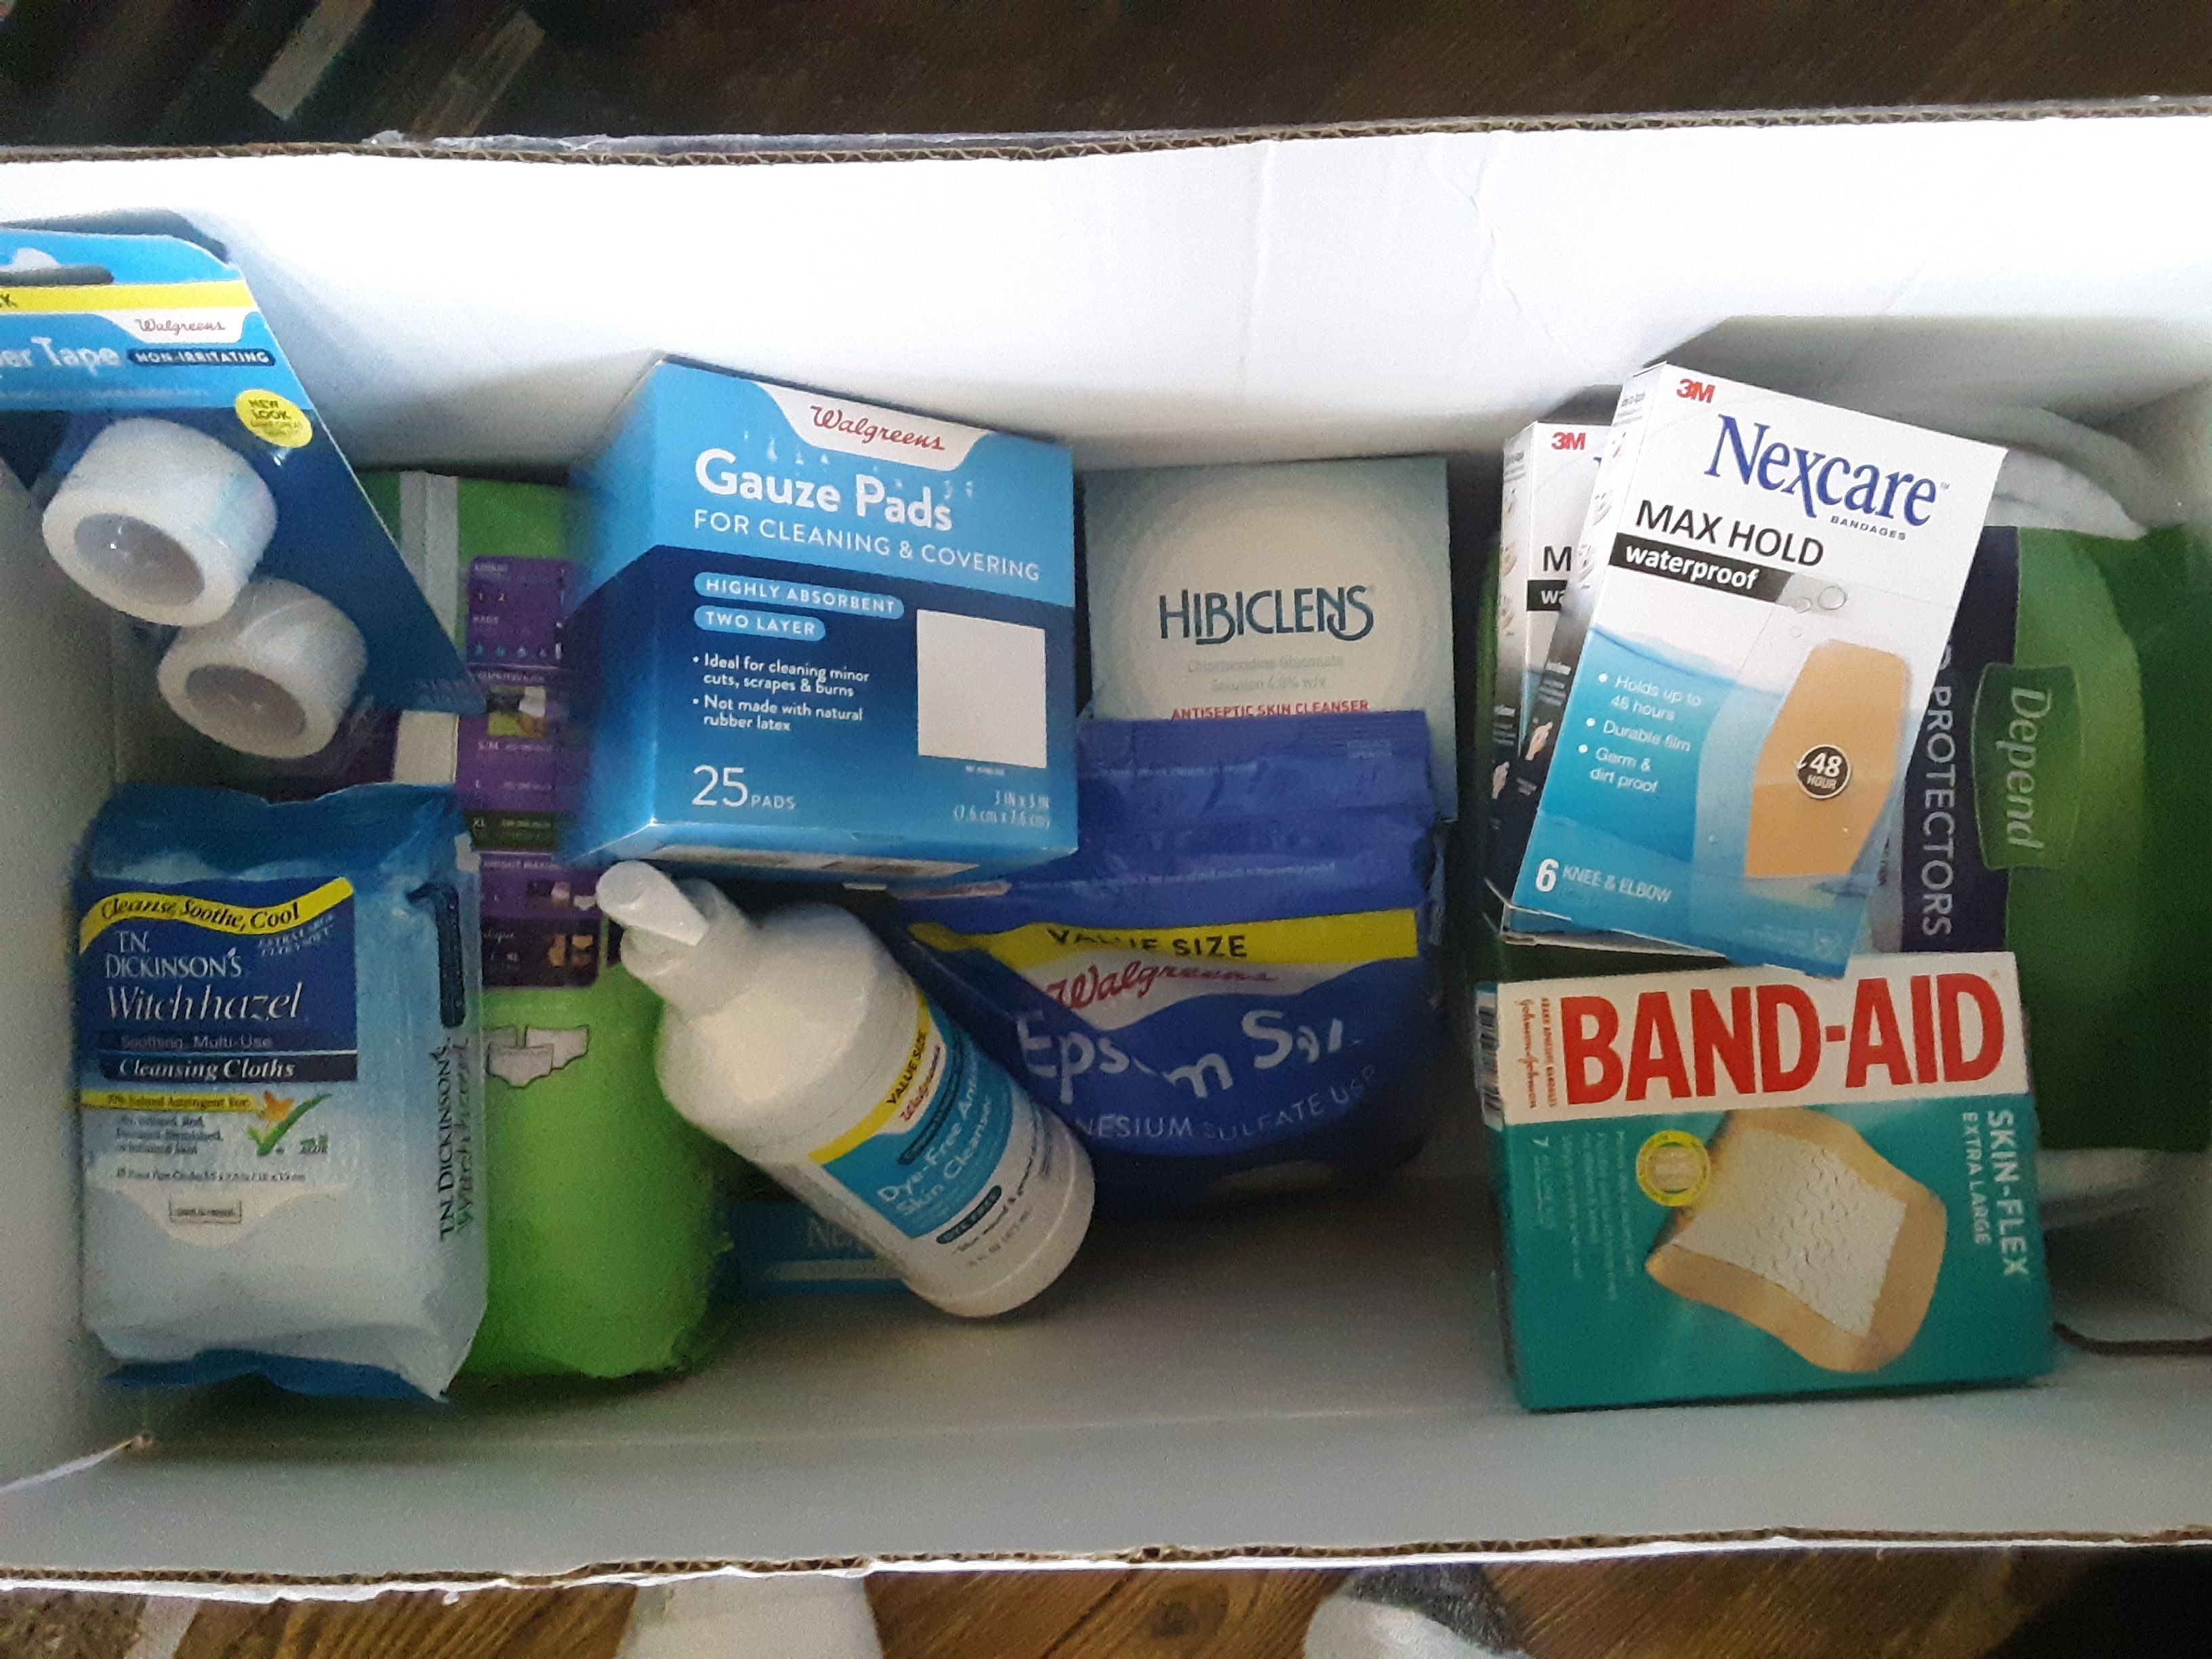 Colleen Sverha is March's Medical Supplies Care Package Winner